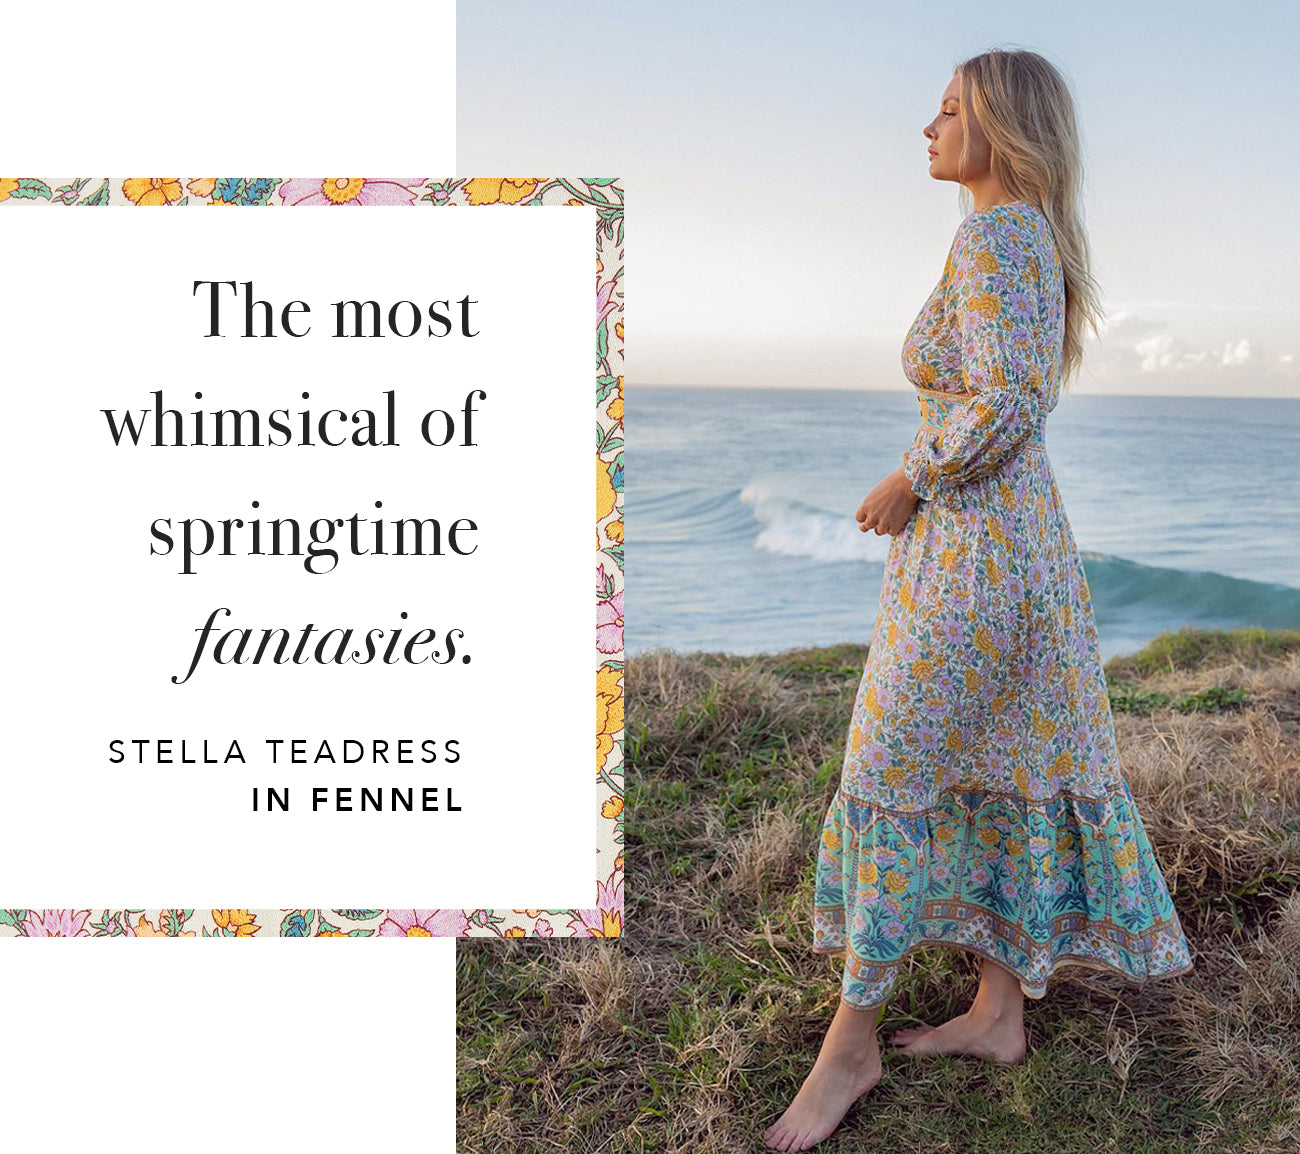 The Stella Teadress in Fennel from sustainable clothing brand Arnhem